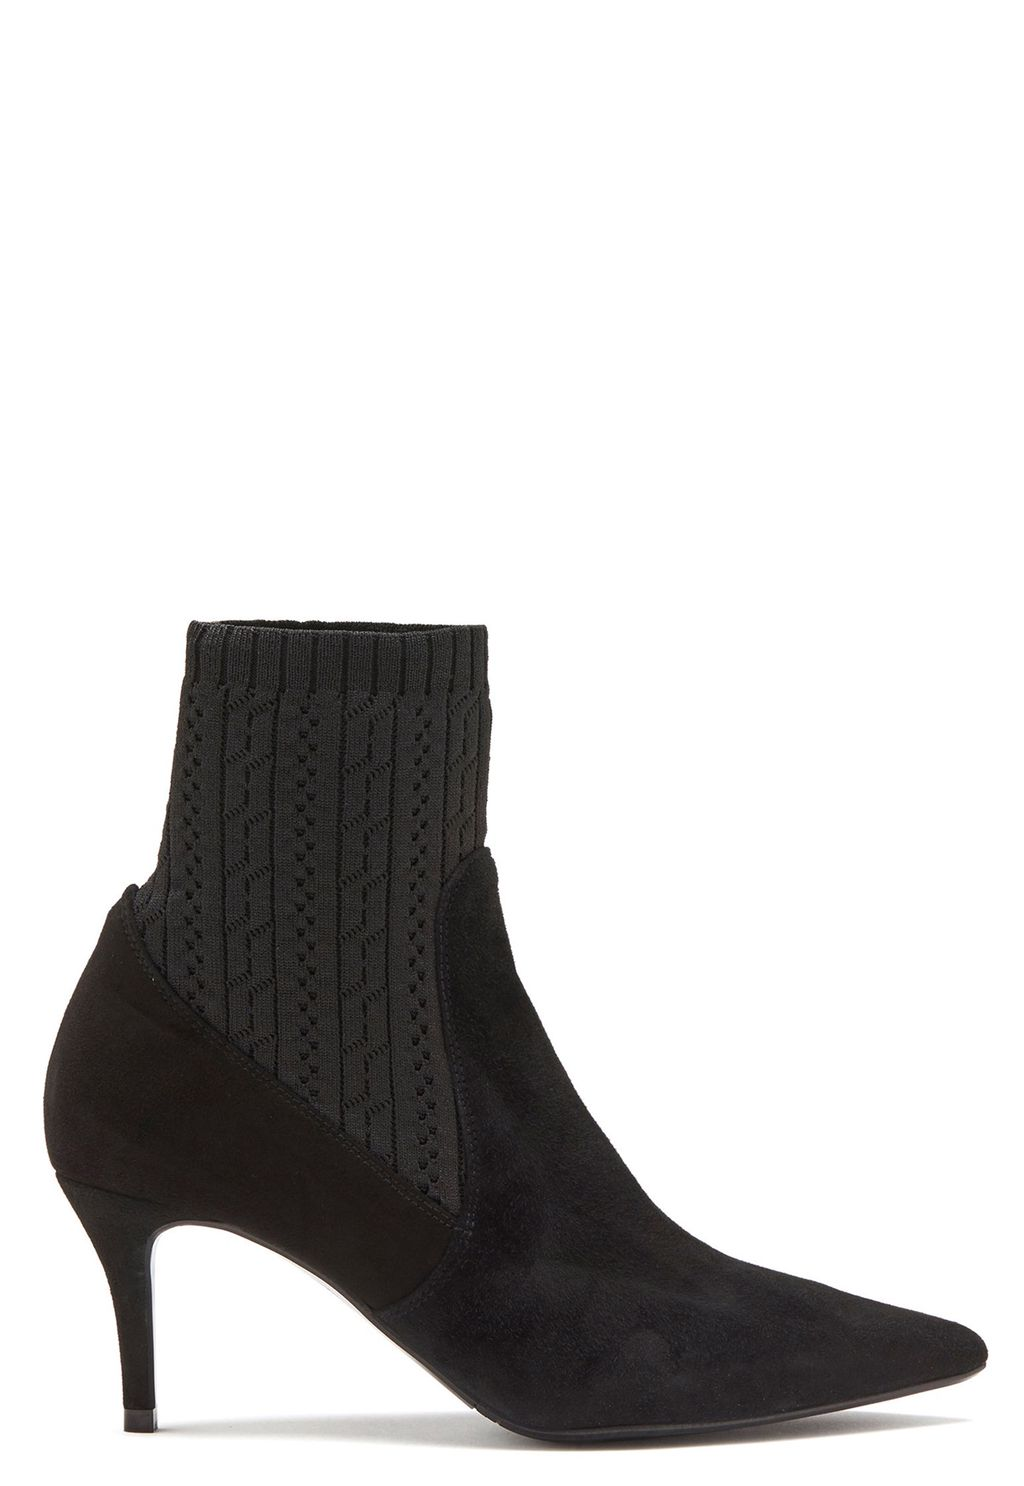 fe077d39563f Suede Stretch Boots Black - Bubbleroom